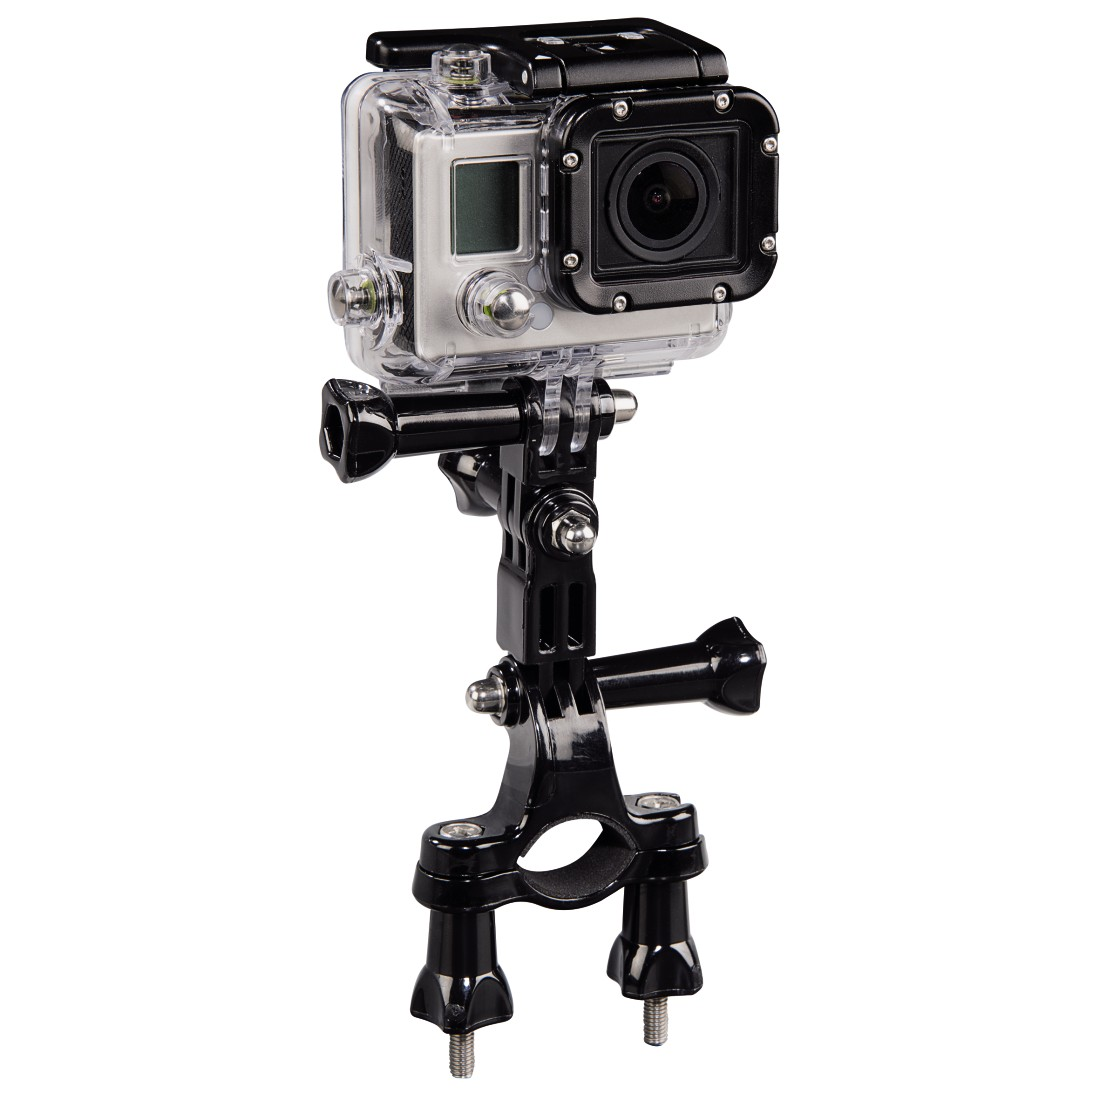 "awx2 High-Res Appliance 2 - Hama, Pole mount ""small""voor GoPro, van 1,6 - 4 cm"